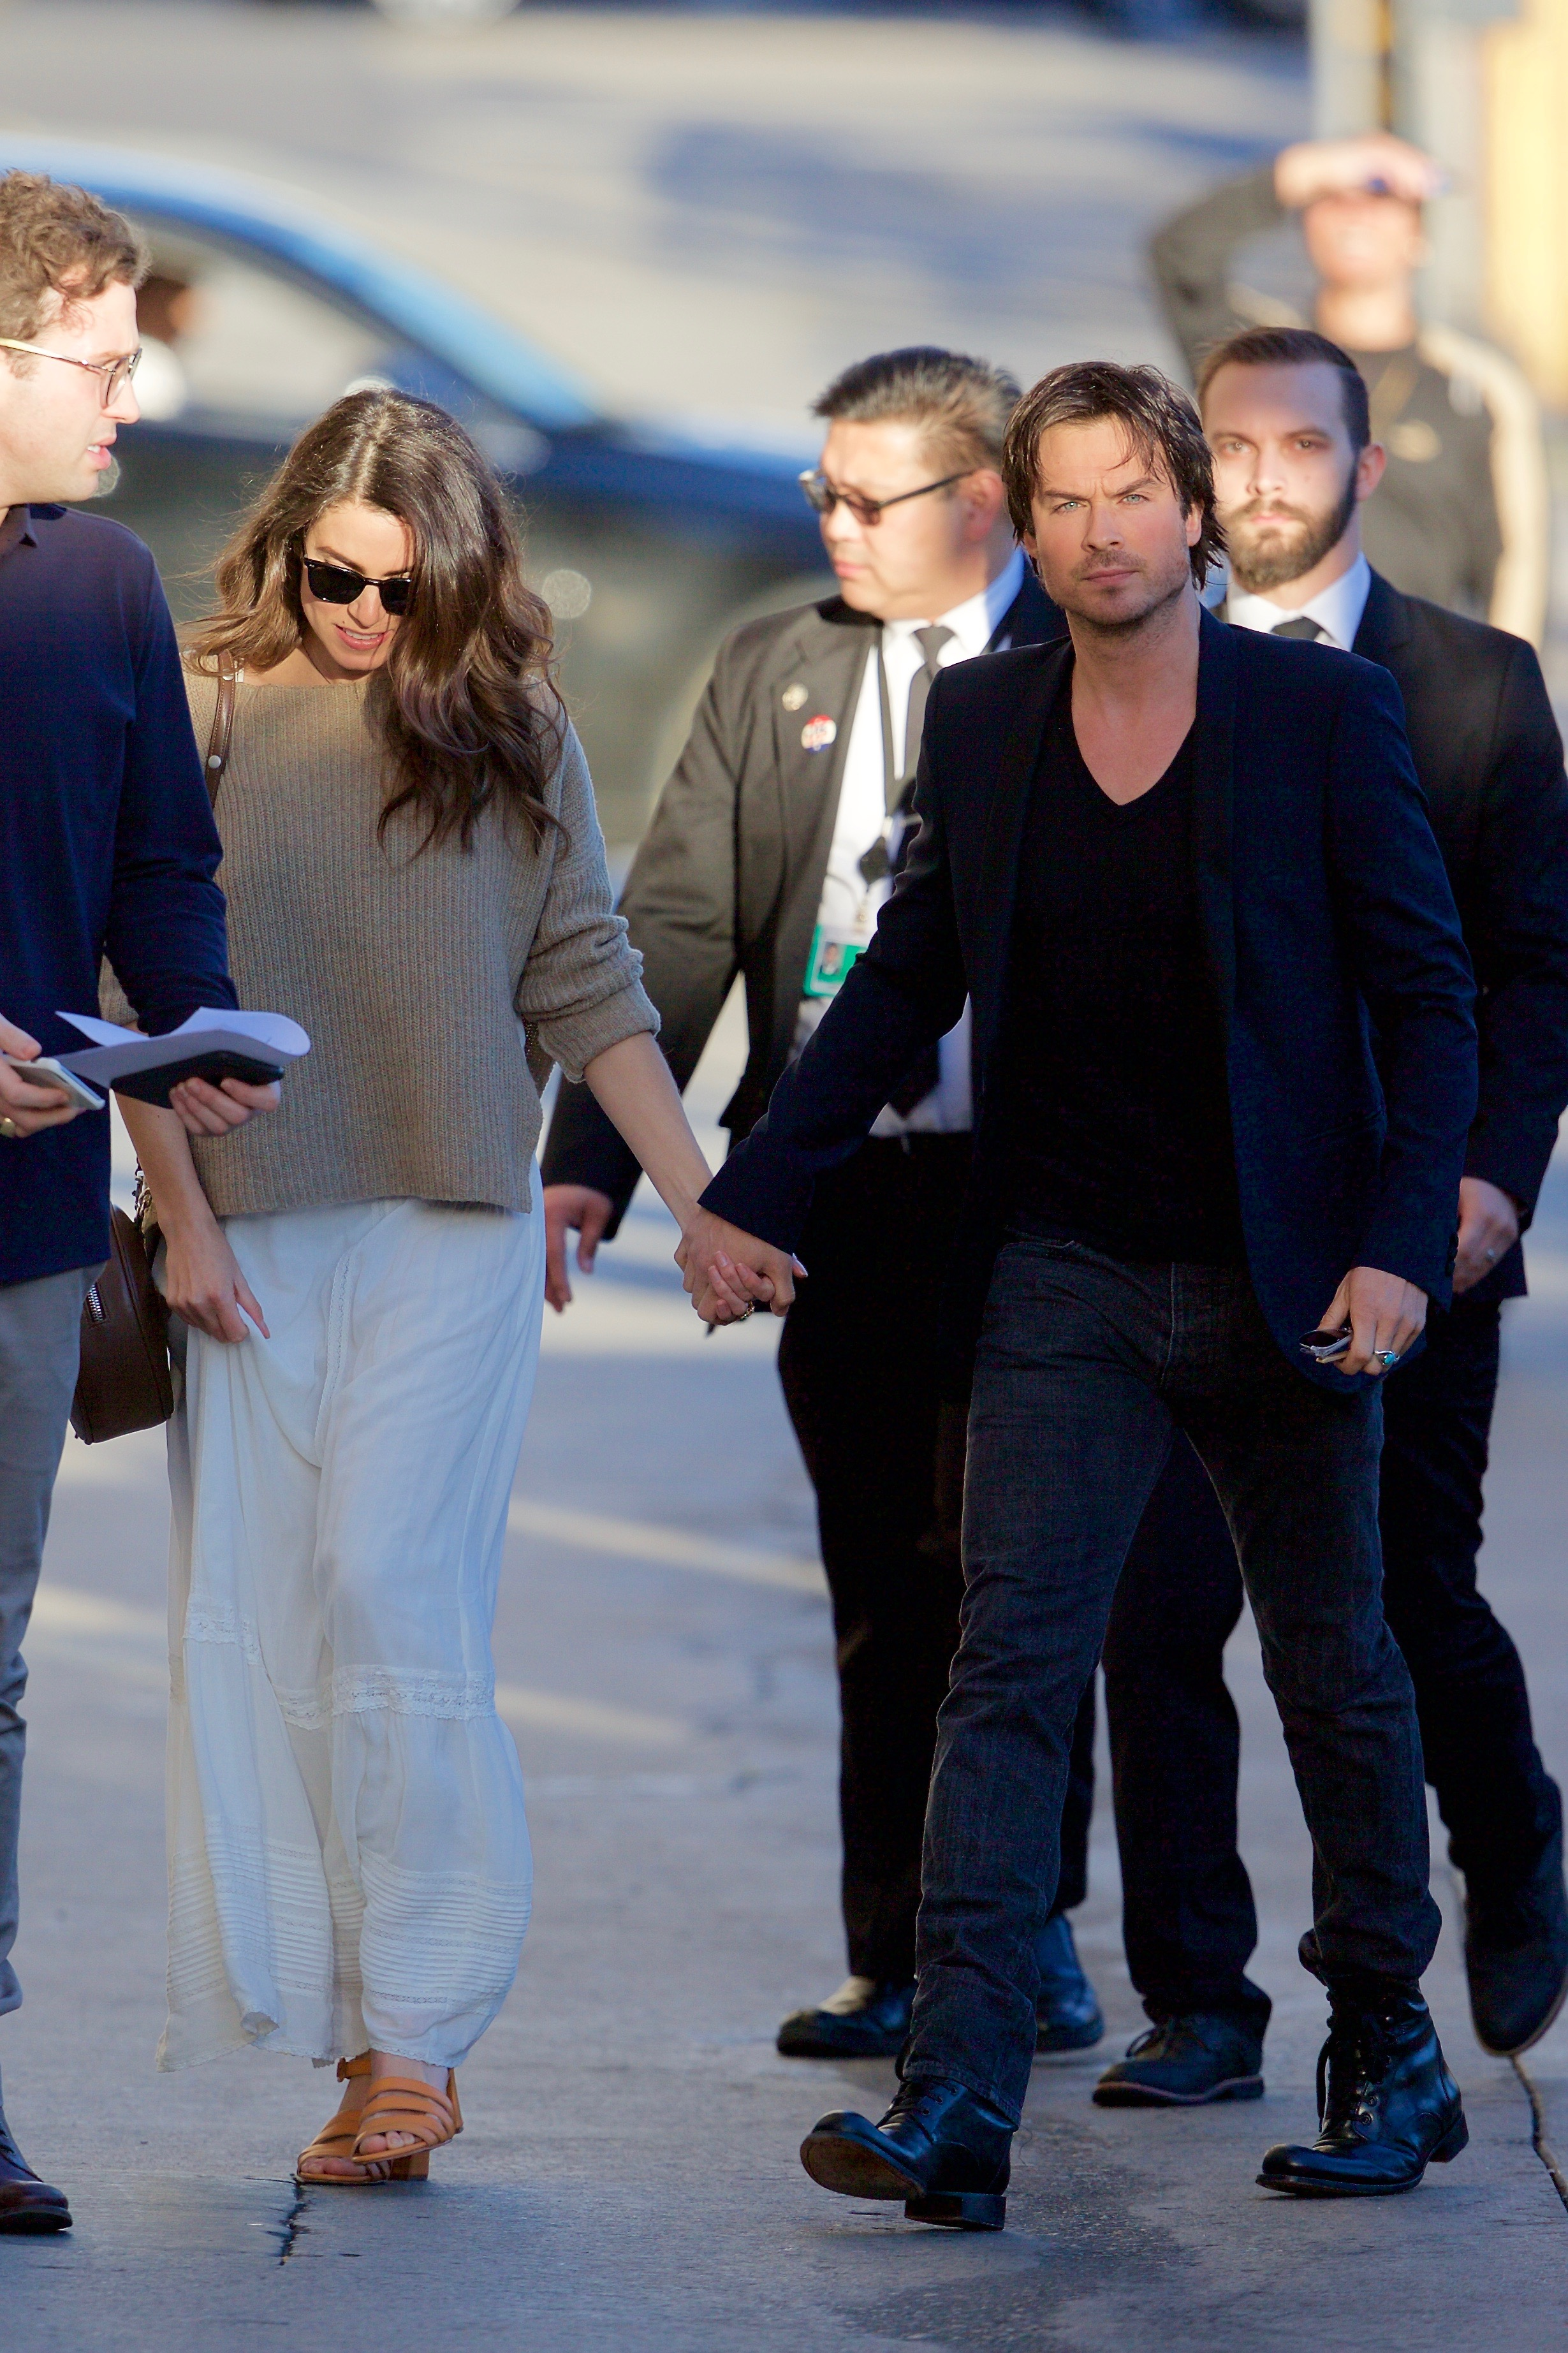 Ian Somerhalder and Nikki Reed seen arriving at the ABC studios  for Jimmy Kimmel Live  Featuring: Ian Somerhalder, Nikki Reed Where: Los Angeles, California, United States When: 07 Mar 2017 Credit: Michael Wright/WENN.com